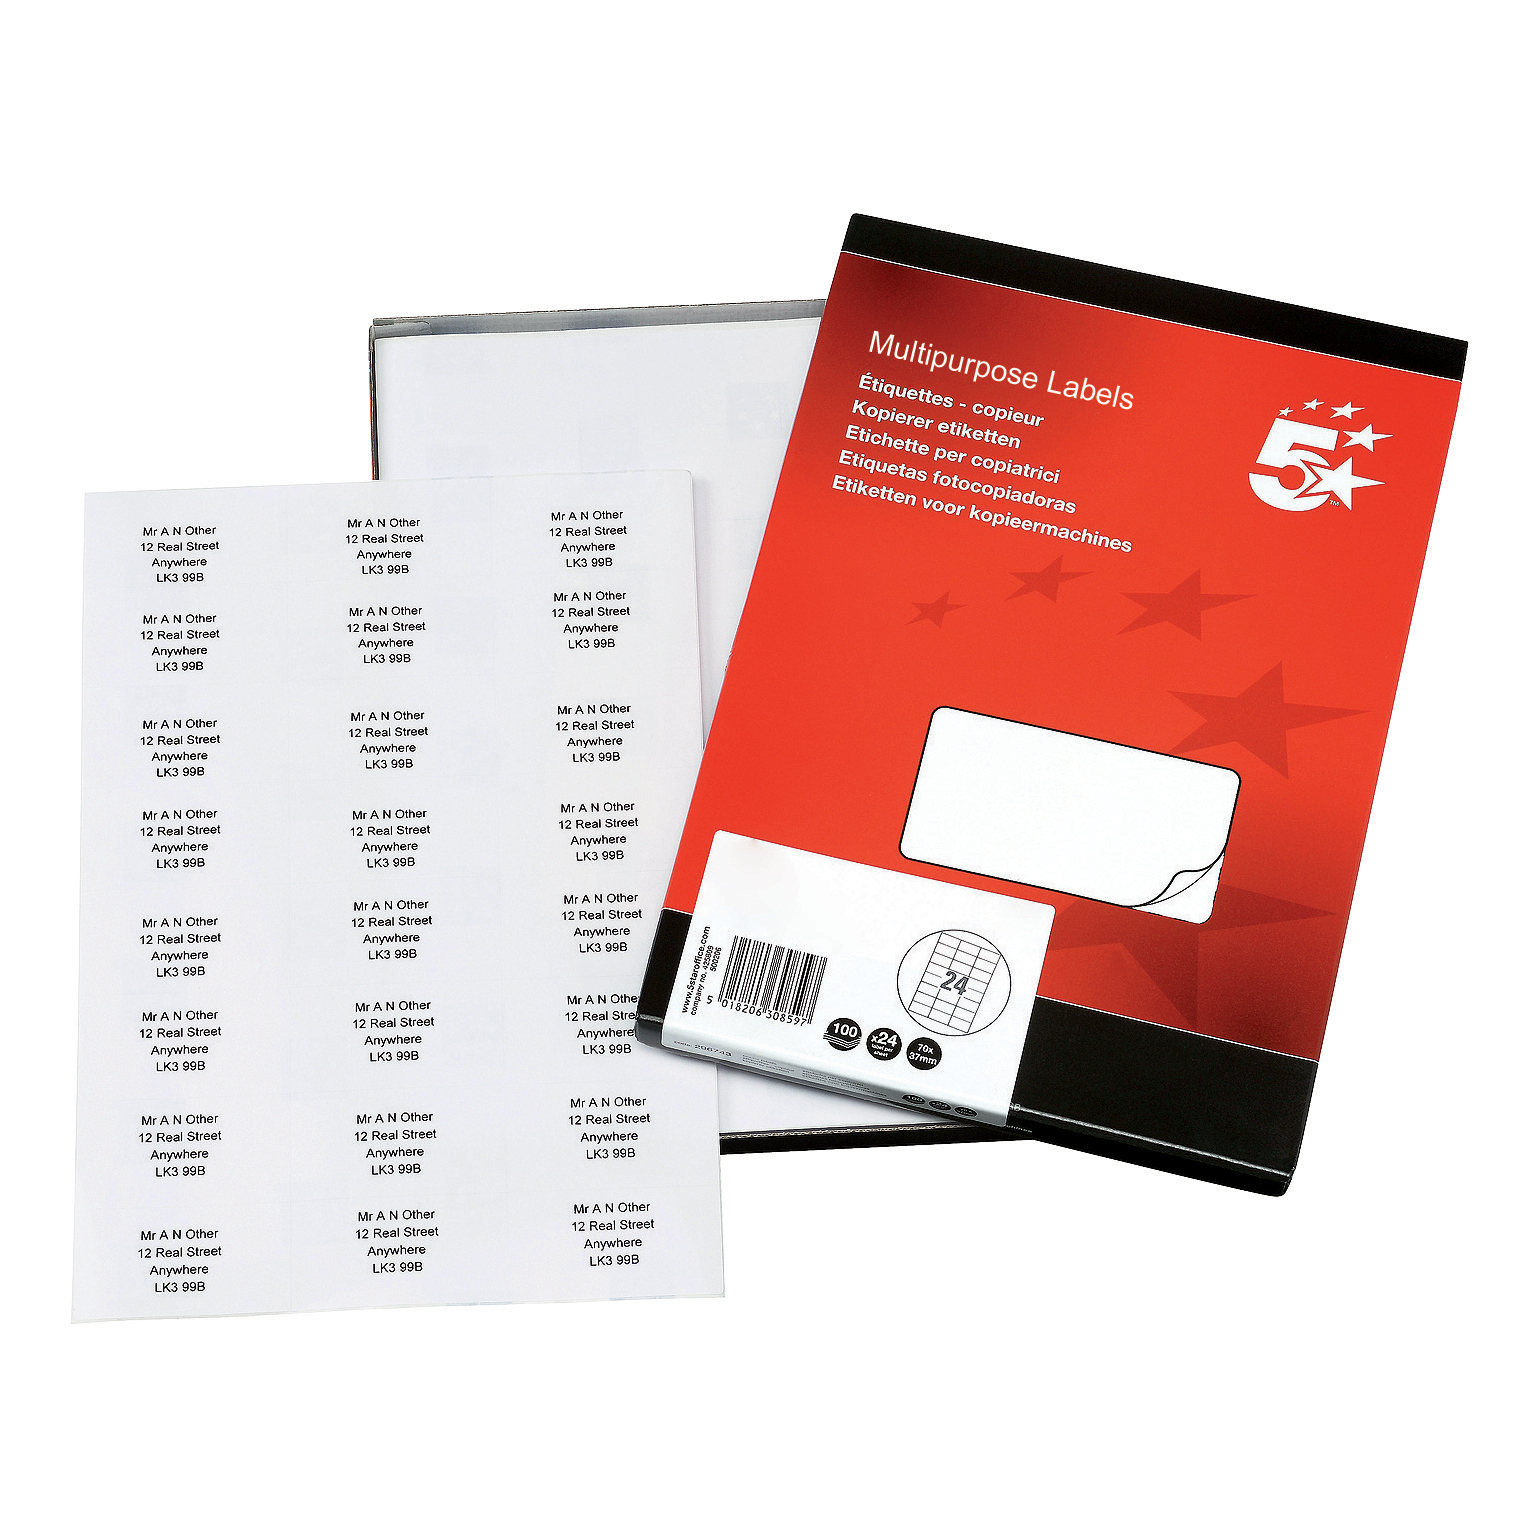 5 Star Office Multipurpose Labels Laser Copier Inkjet 24 per Sheet 70x37mm White 2400 Labels